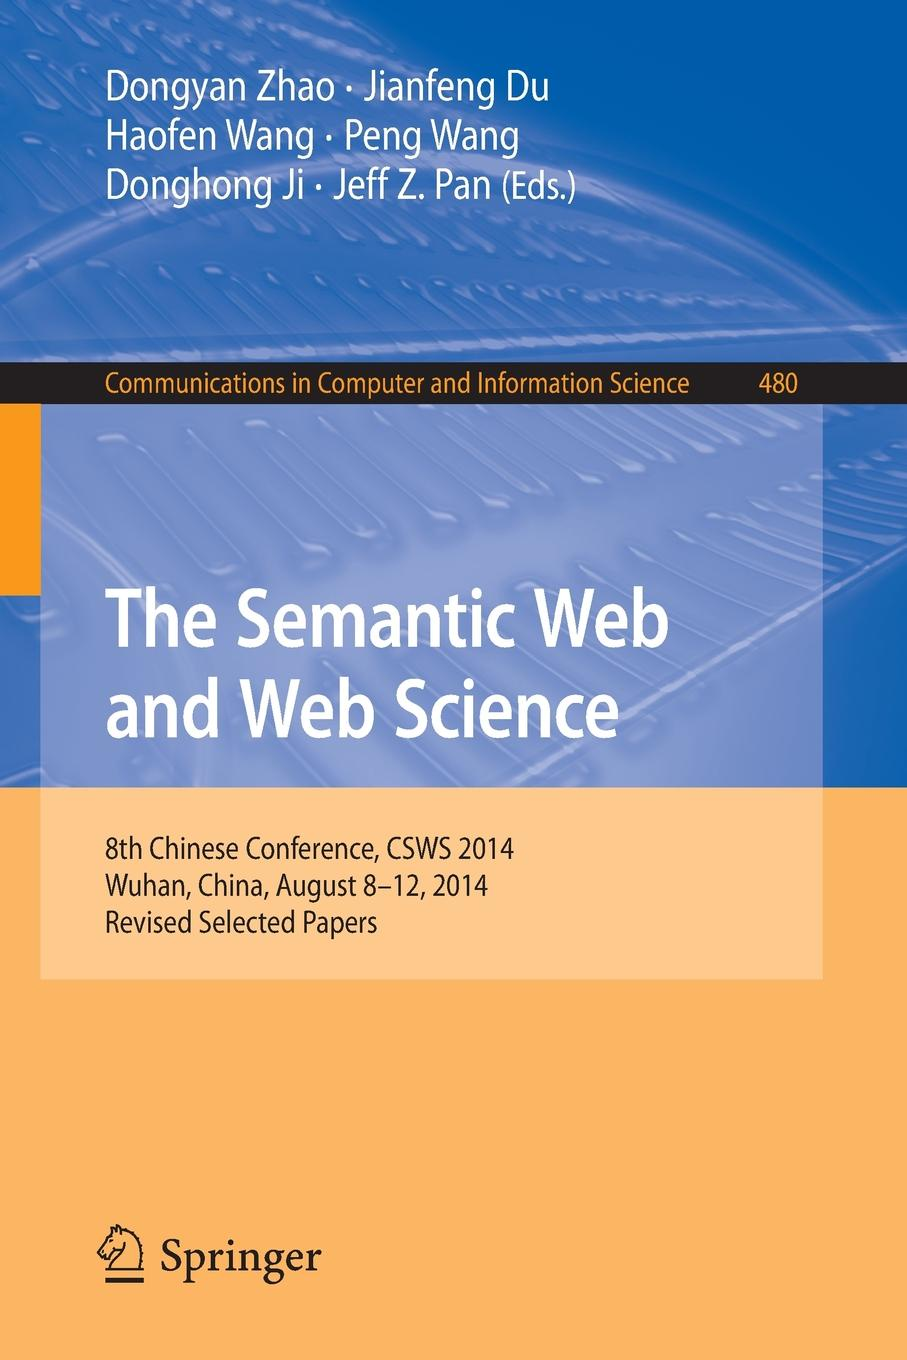 The Semantic Web and Web Science 8th Chinese Conference CSWS 2014 Wuhan China August 8-12 2014 Revised Selected Papers